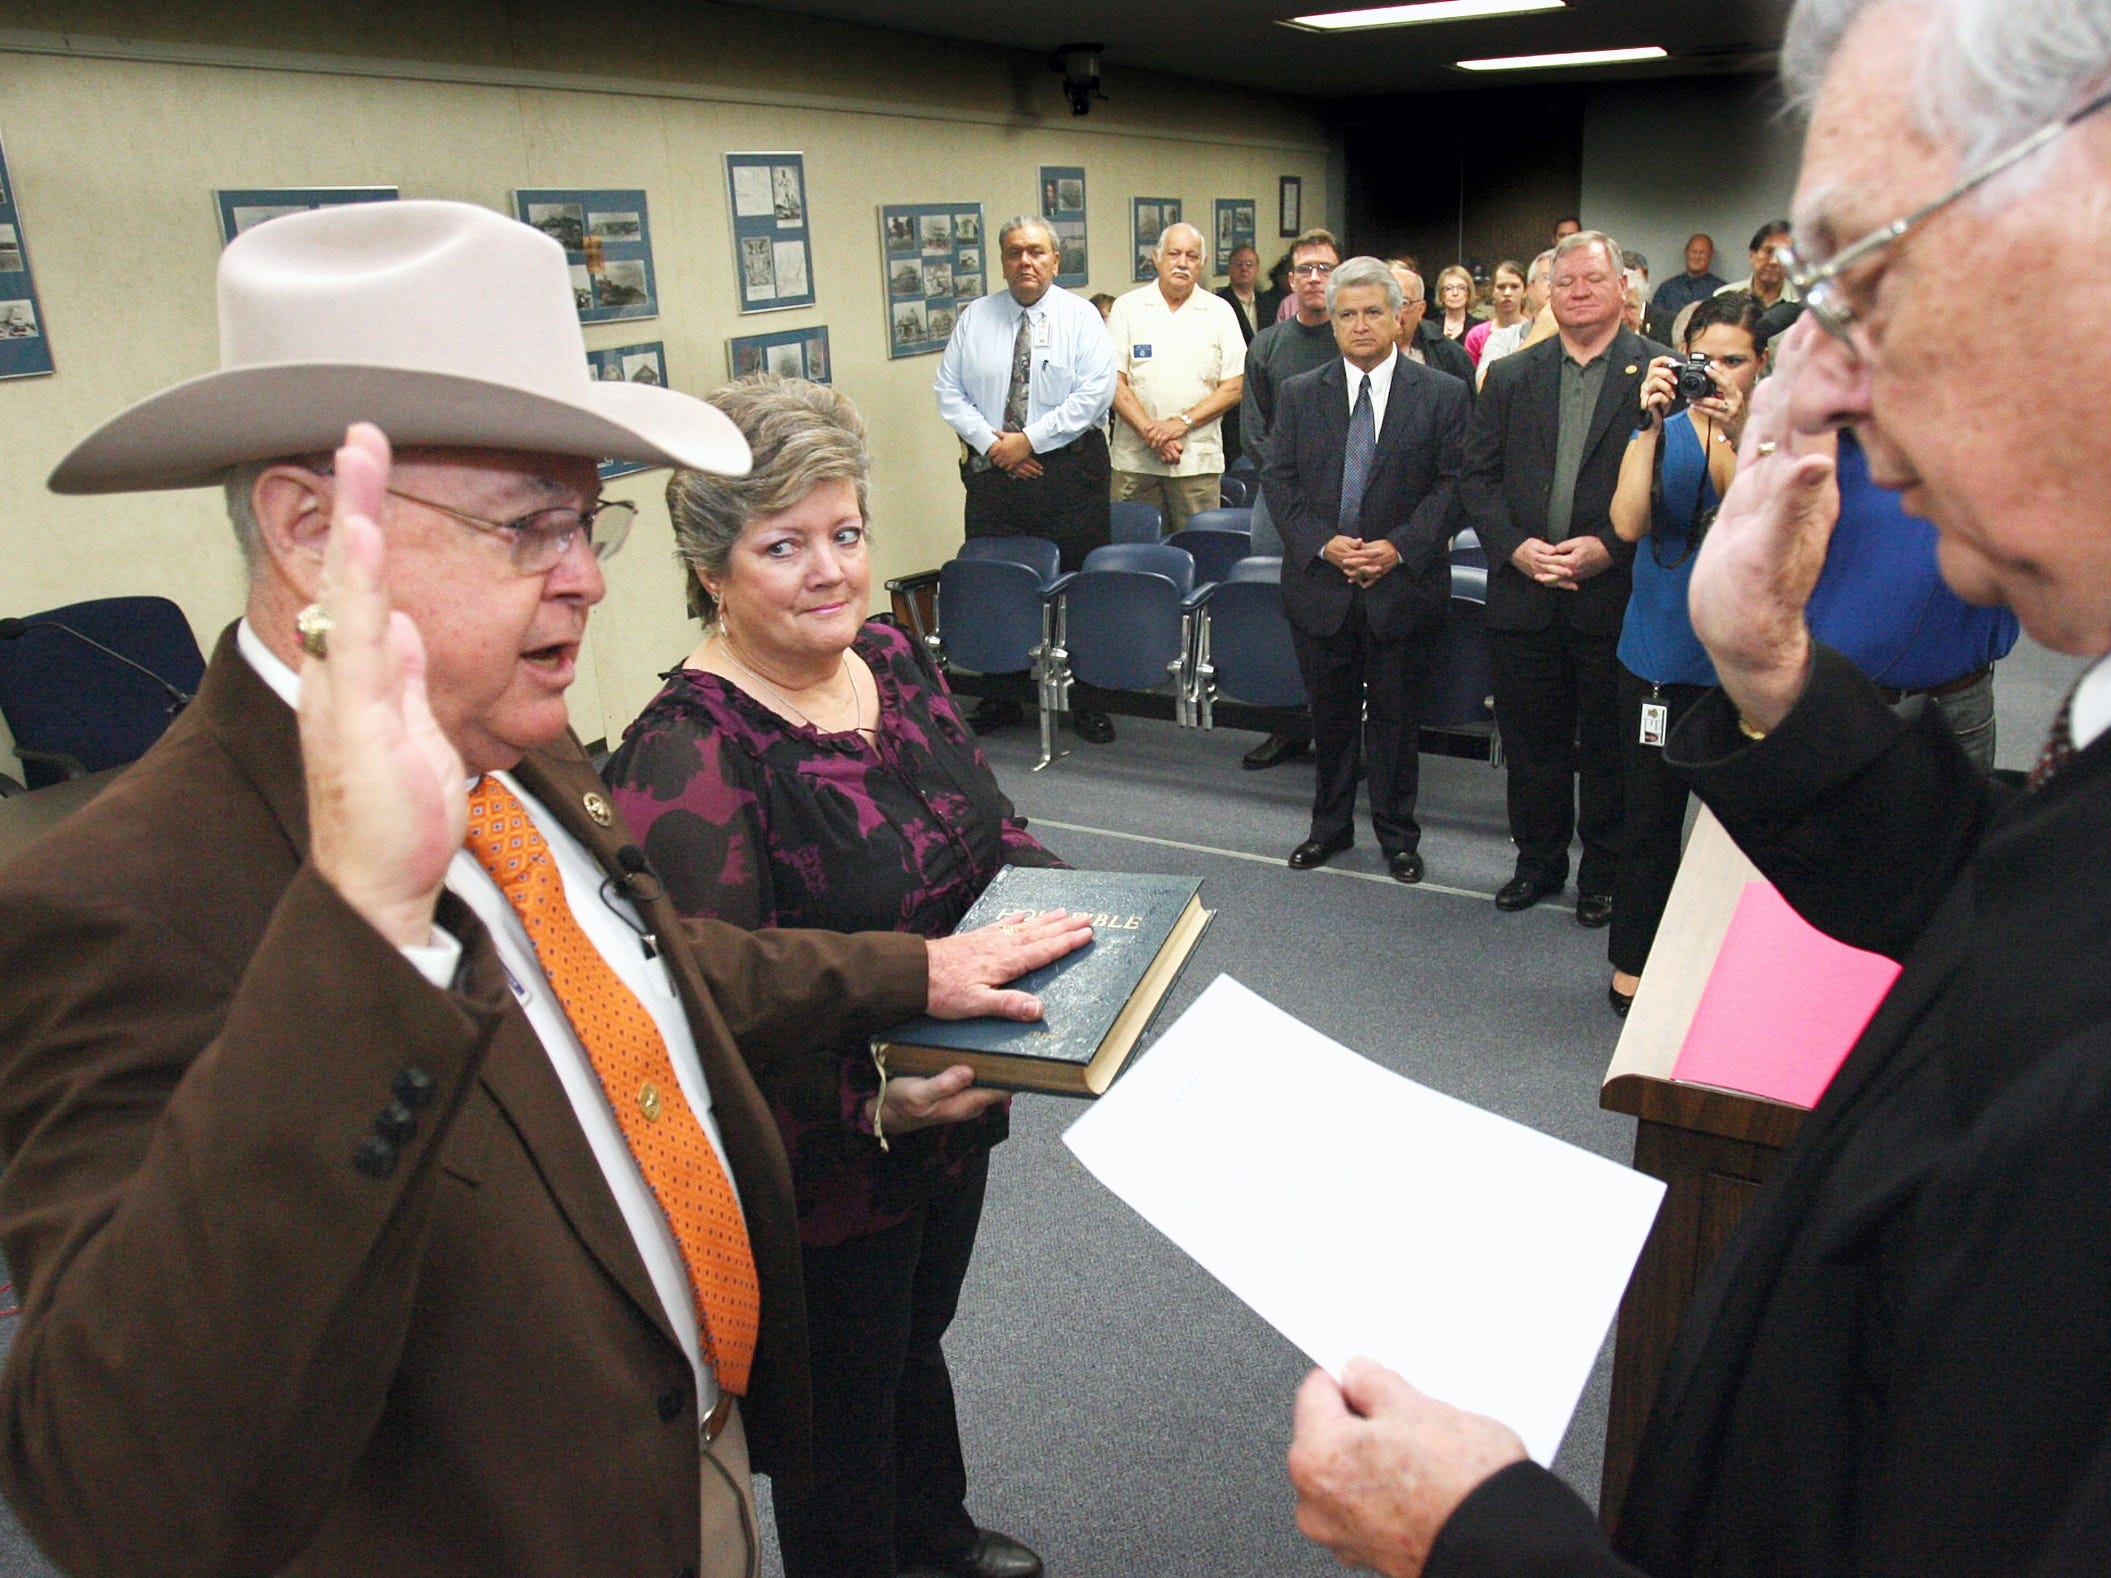 Sheriff Jim Kaelin was sworn into office Monday morning at the commissioners courtroom at nueces county courthouse by county judge Loyd Neal while sheriff's wife, Sharon Kaelin, holds the family bible.  About 150 people showed up to witness and also to share cake in the sheriff's office community room.